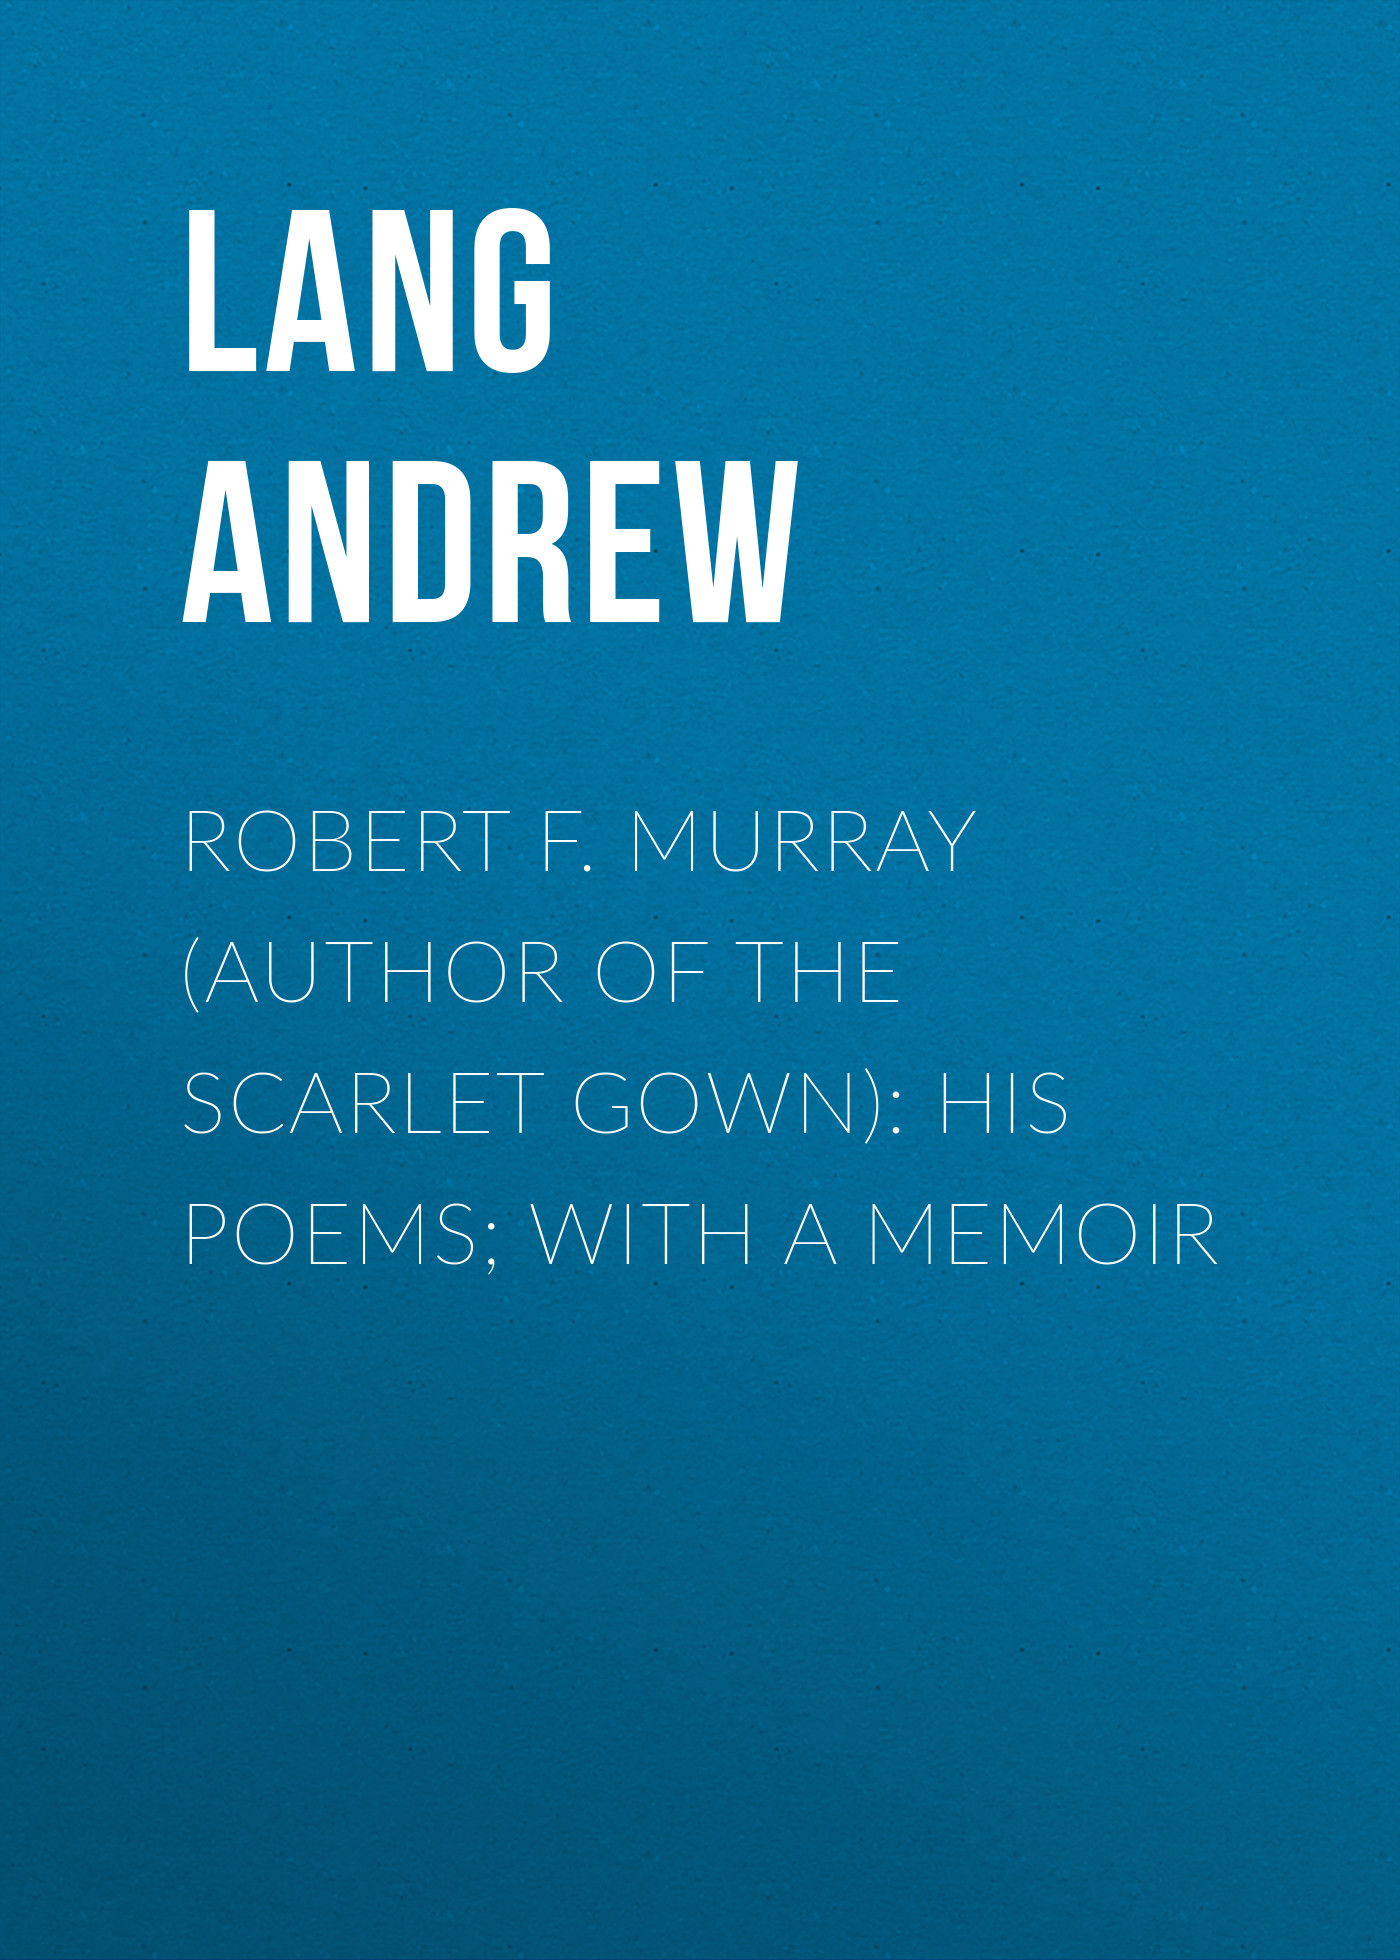 Lang Andrew Robert F. Murray (Author of the Scarlet Gown): His Poems; with a Memoir поло женское oodji ultra цвет темно синий 19301001 8 46161 7900p размер s 44